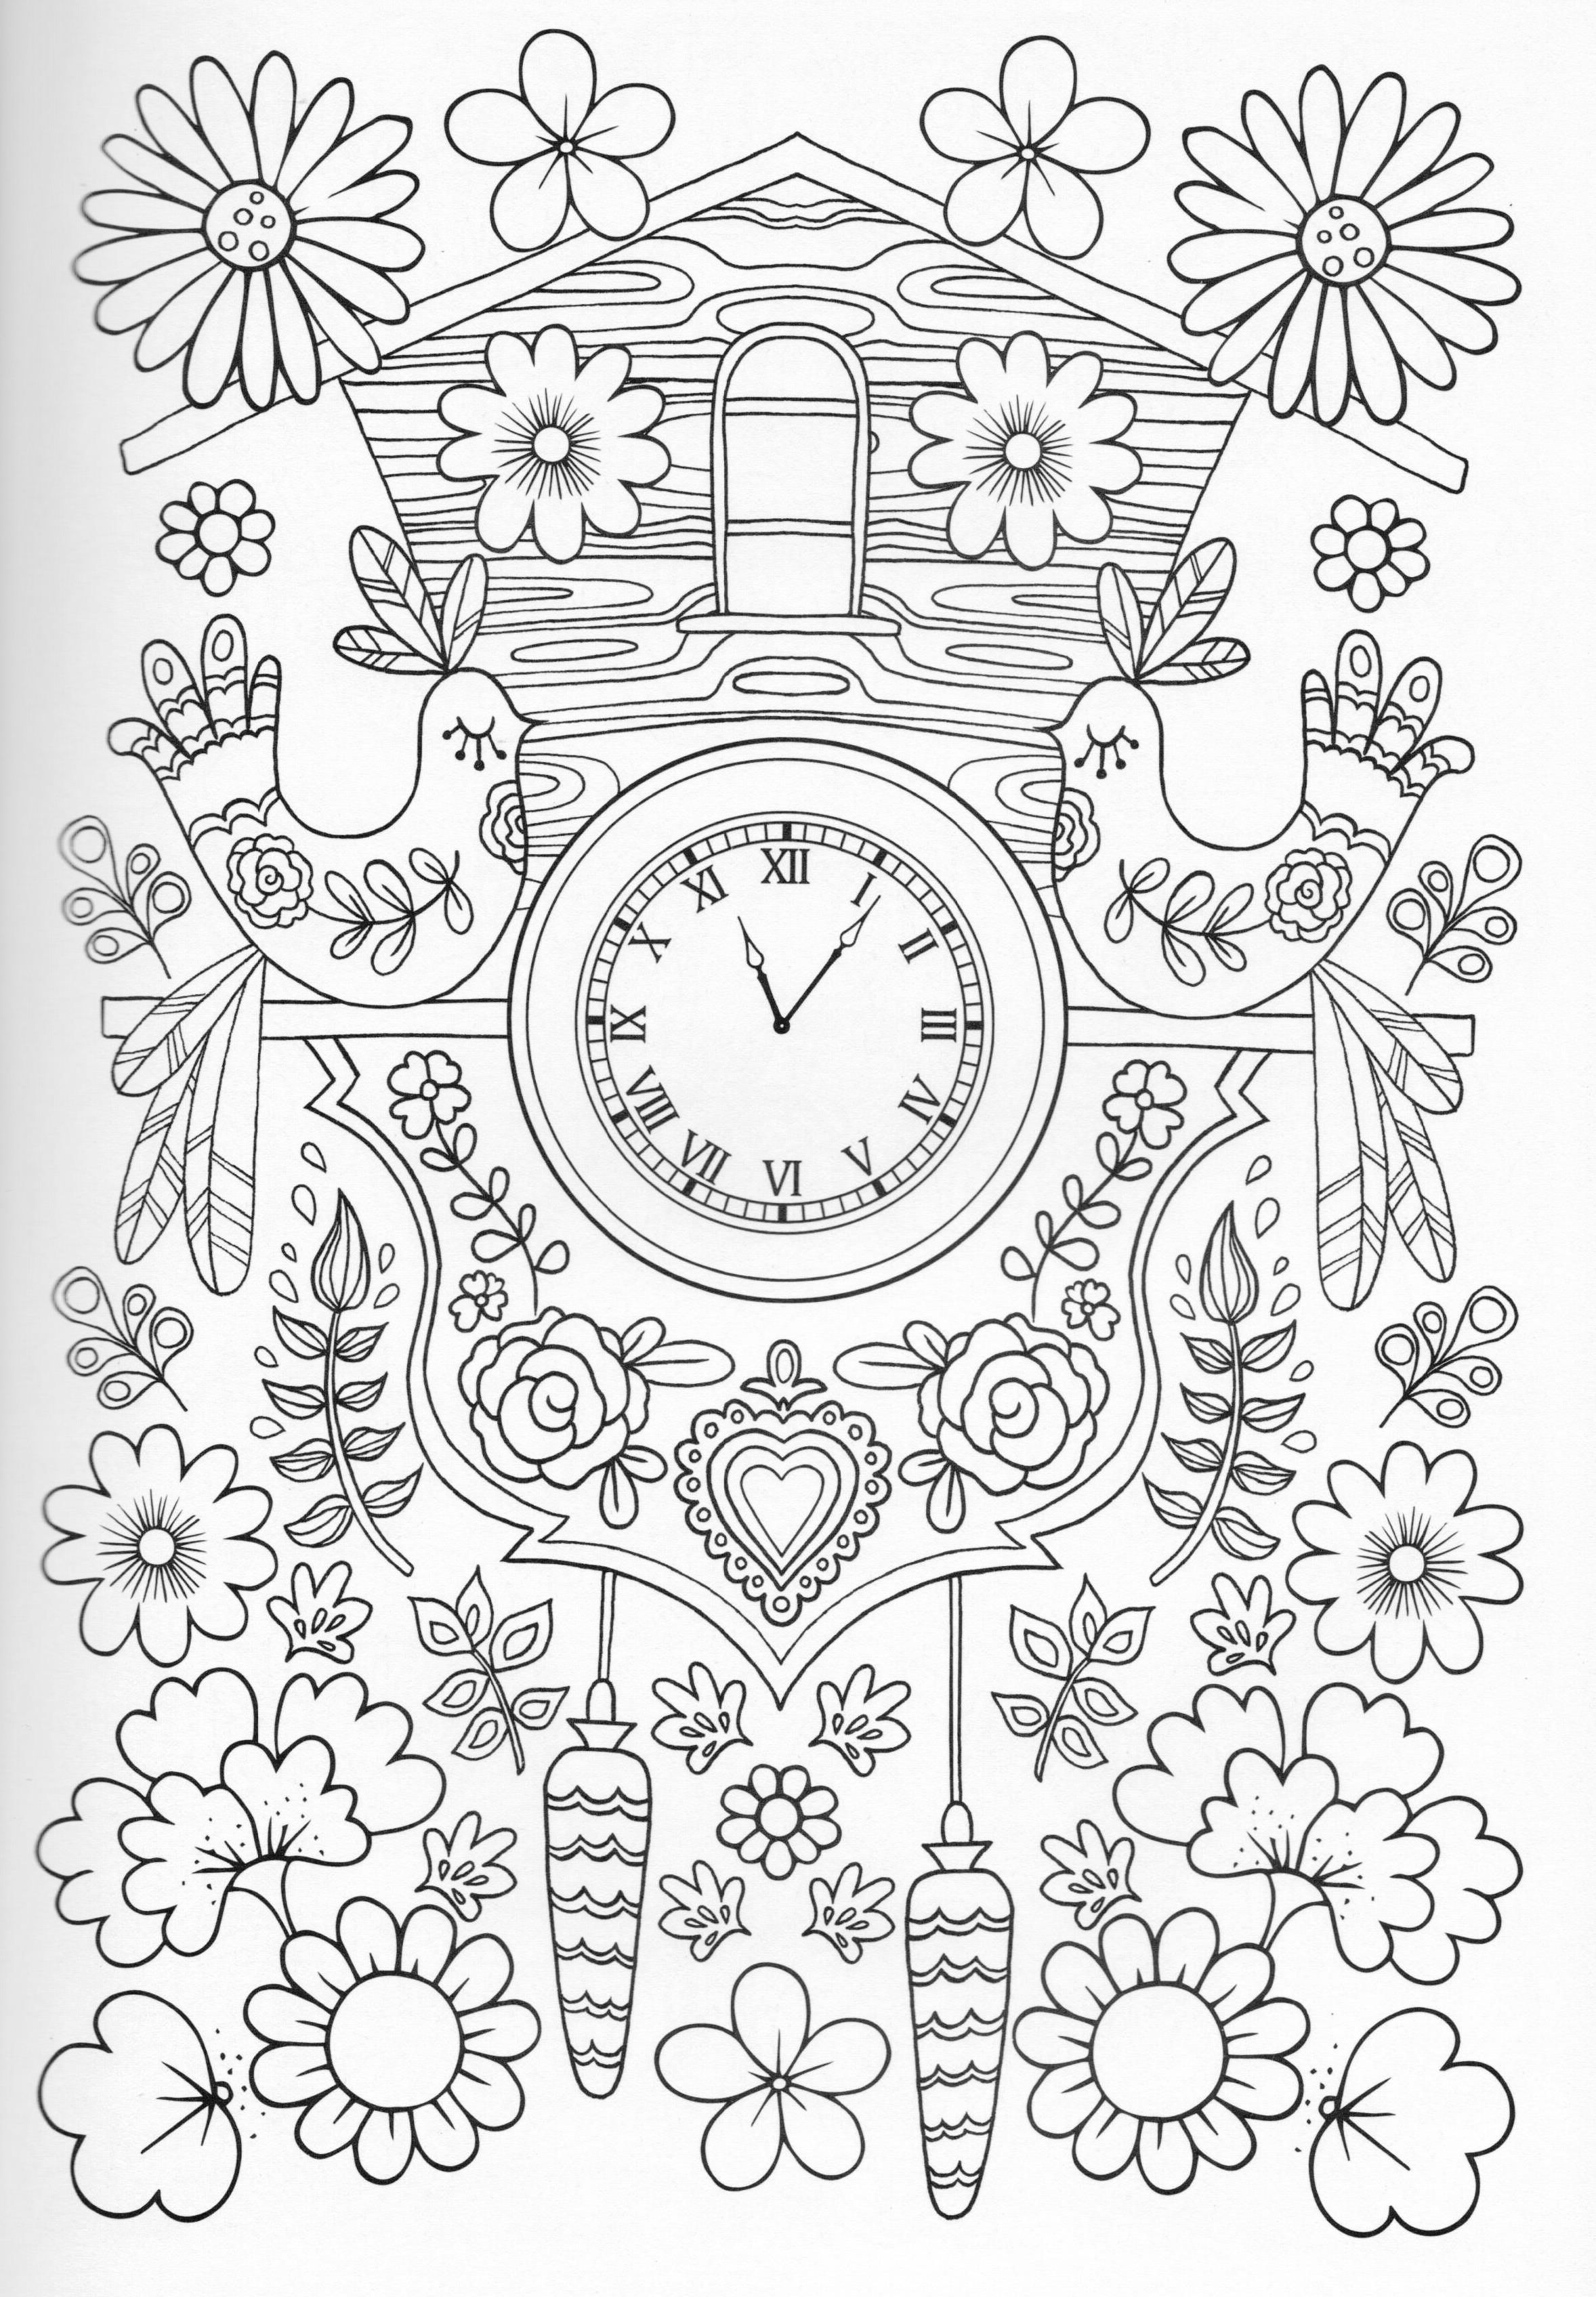 Cuckoo Clock Coloring Page A Has Got The Sounds Like Cuckoos Call And An Automated Bird That Will Move With Each Minute